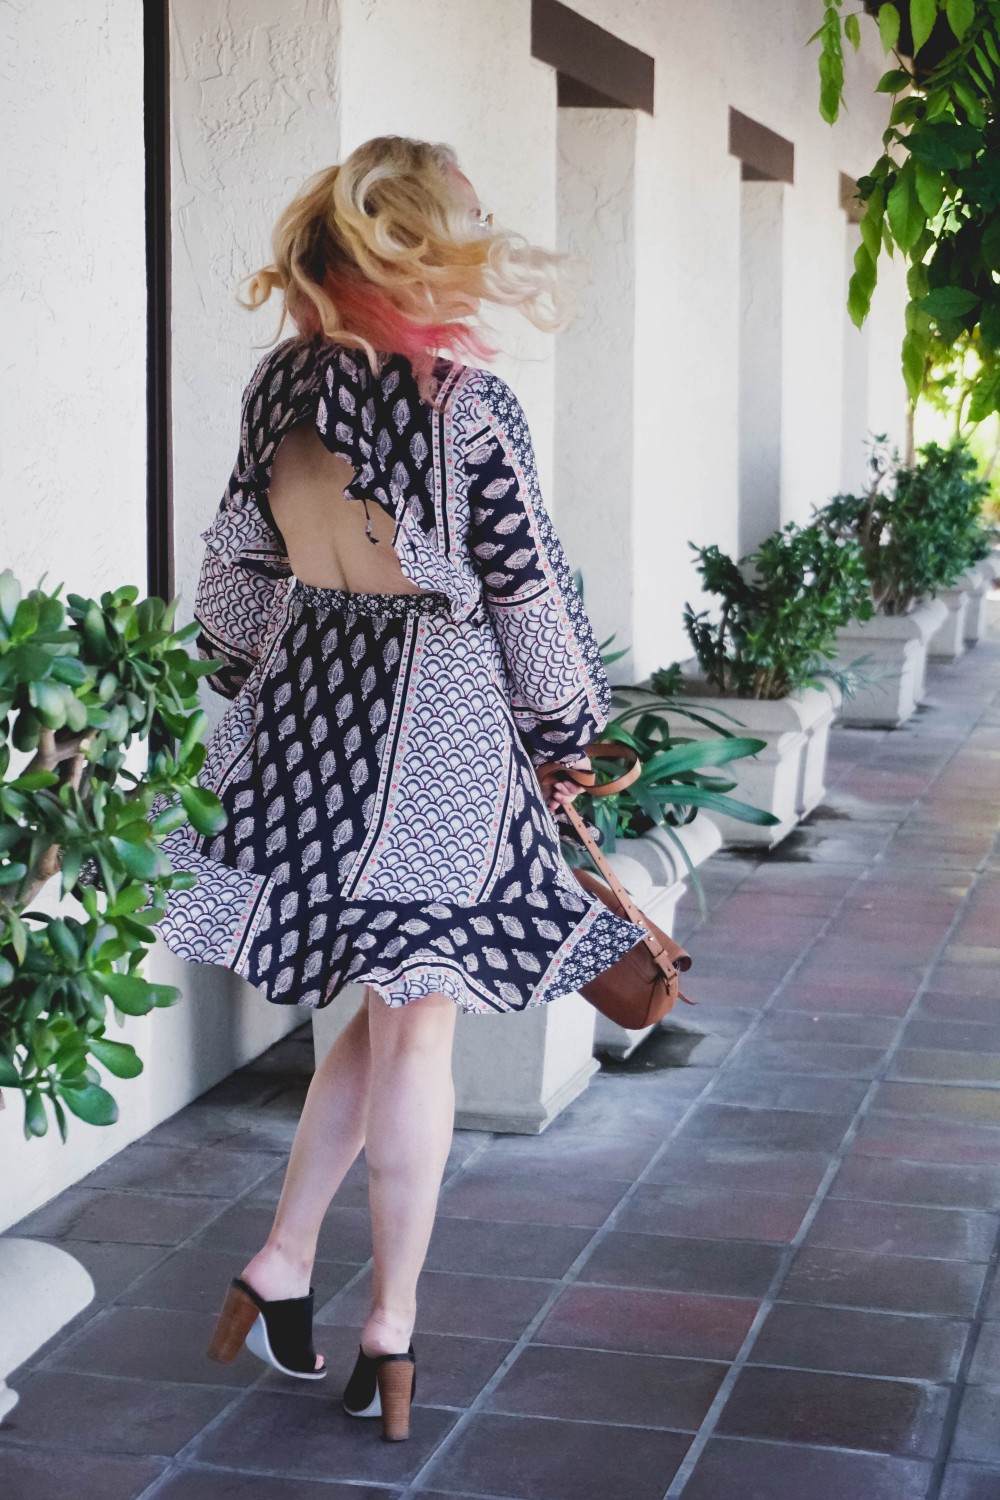 Open Back Ruffle Dress-Nordstrom Anniversary Sale-NSale-Fall Fashion-Fall Dresses-Outfit Inspiration-Buy Now Wear Now-Have Need Want 6